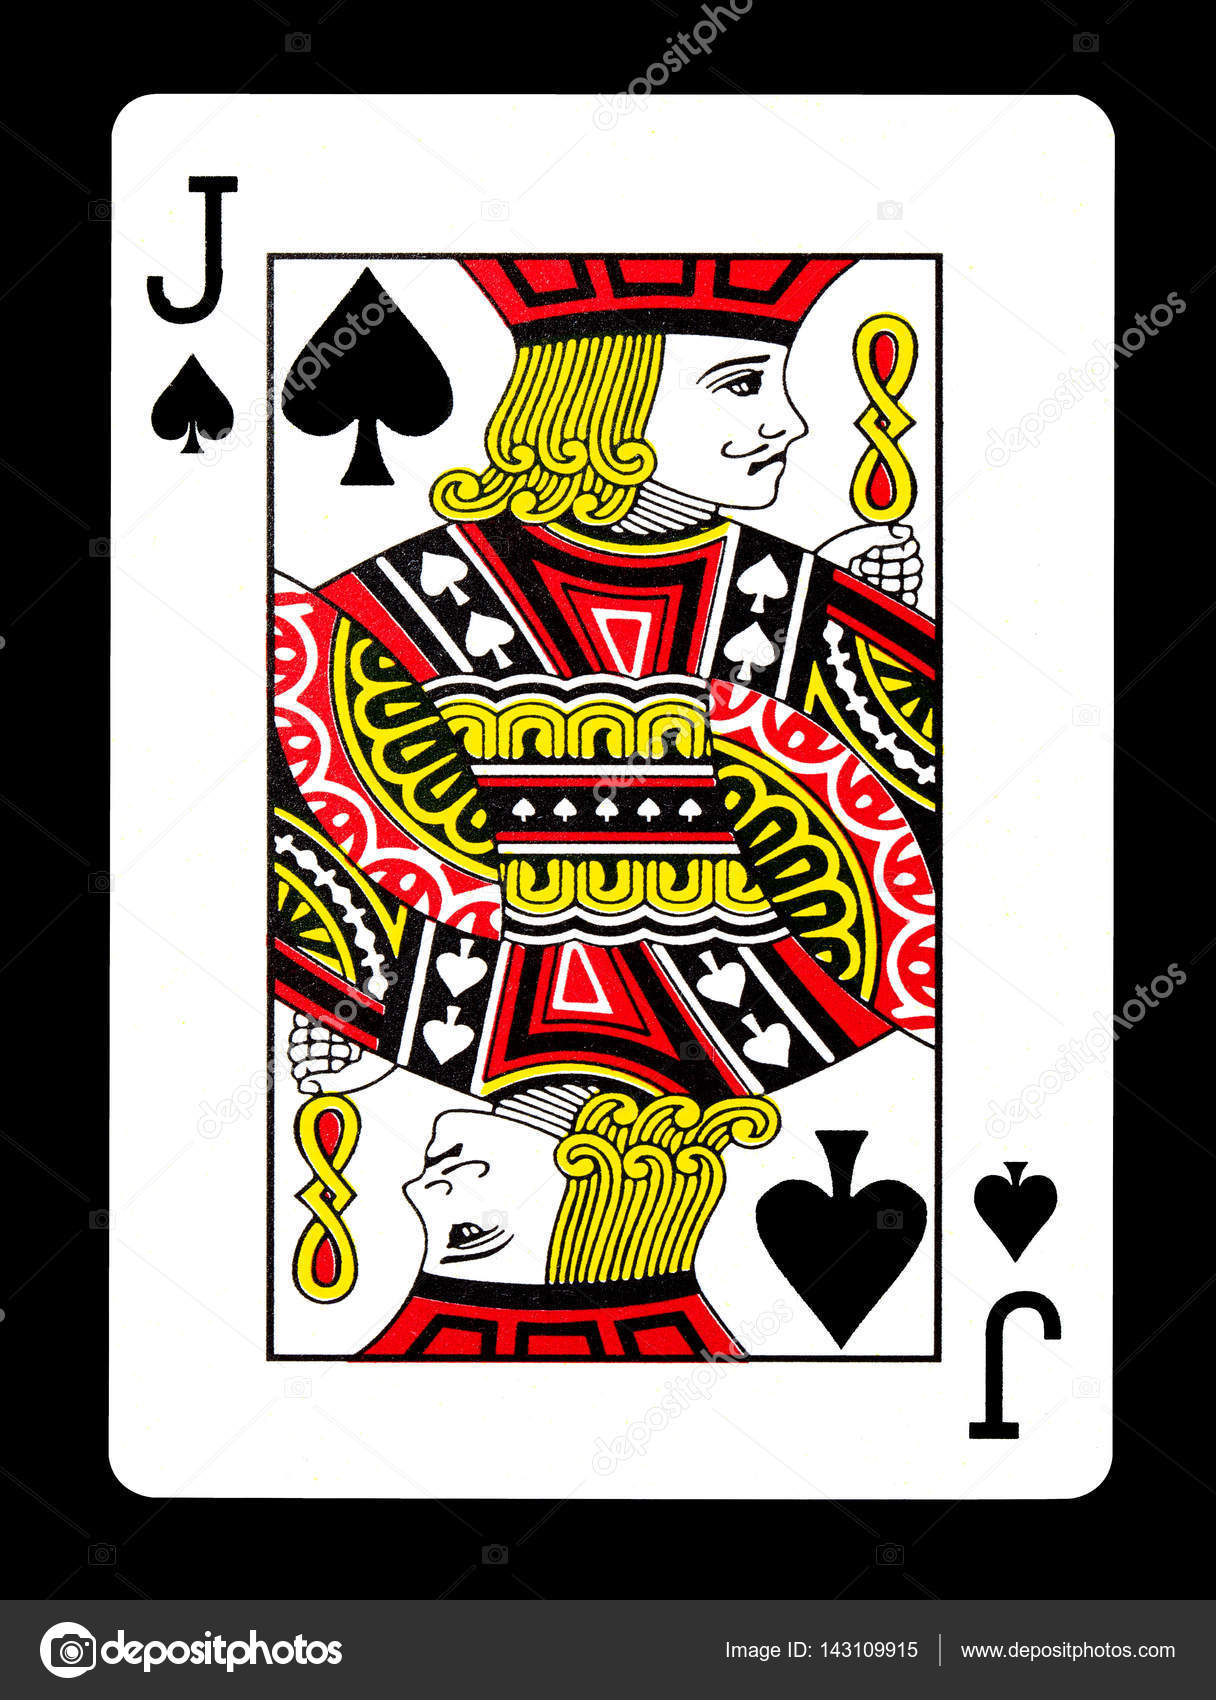 jack spade card  Jack of spades playing card, isolated on black background ...